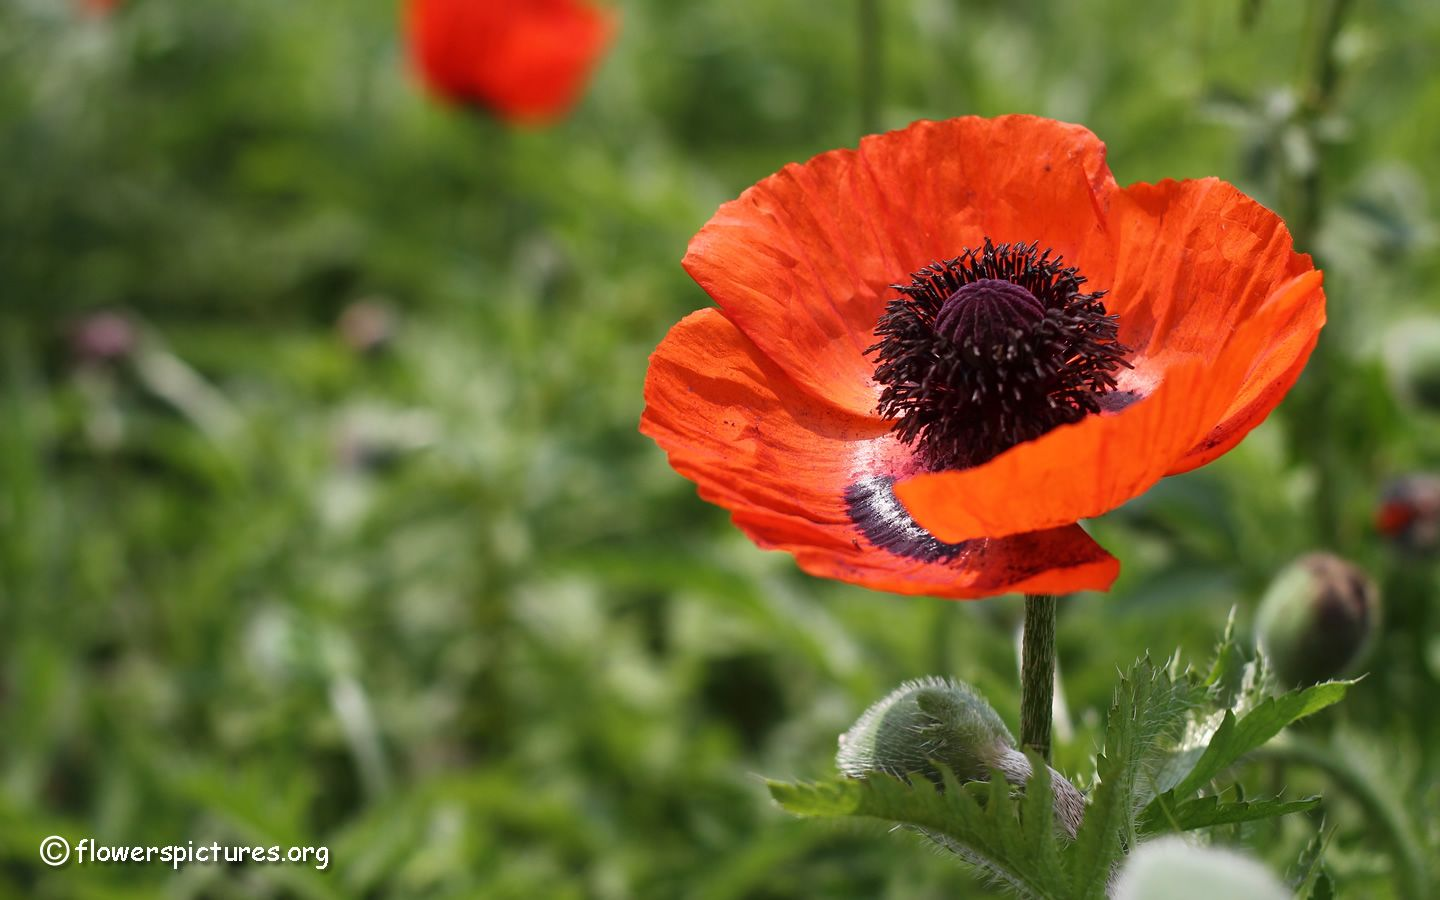 Poppy Seed Is An Oilseed Obtained From The Opium Poppy Papaver